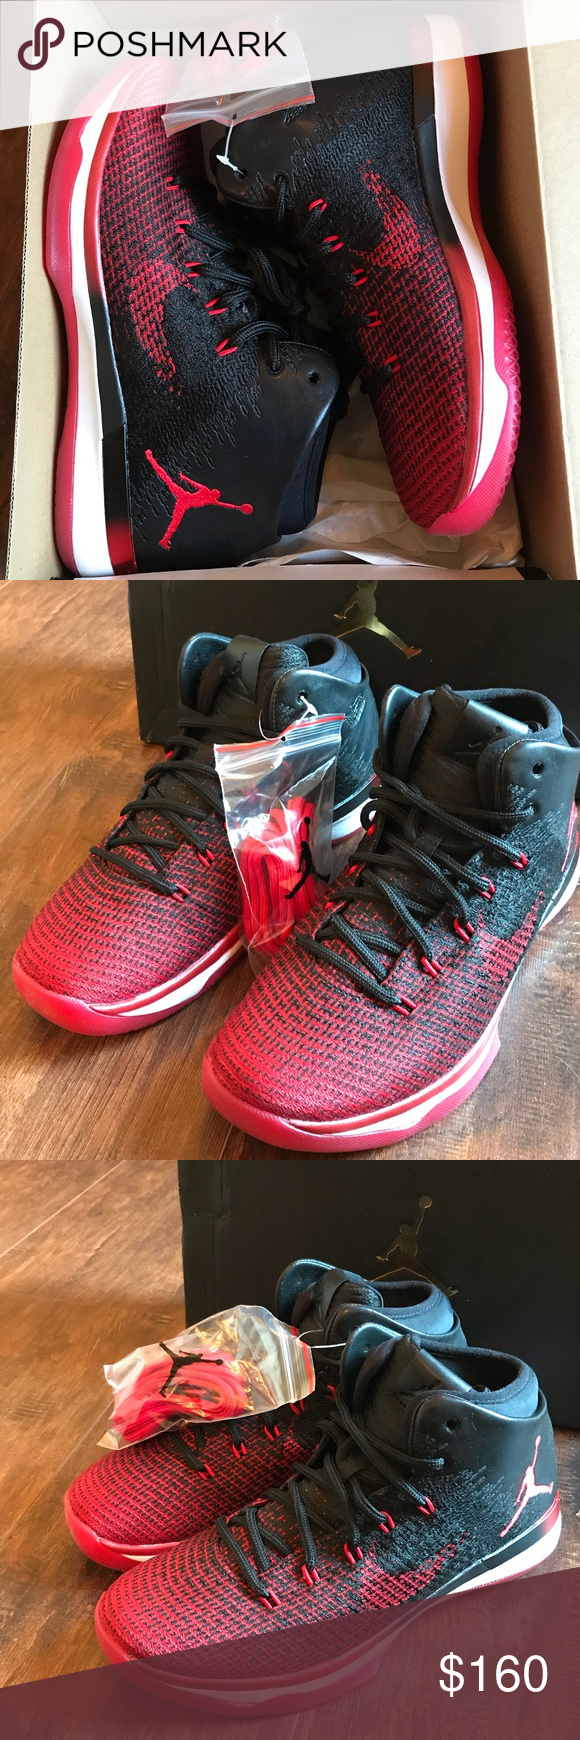 """Jordan 31 banned 6.5 youth sneakers red black nike New in box! Air Jordan 31  """"banned"""" sneakers. Size 6.5 youth. Will fit womens size 8. 7cbfac921c"""